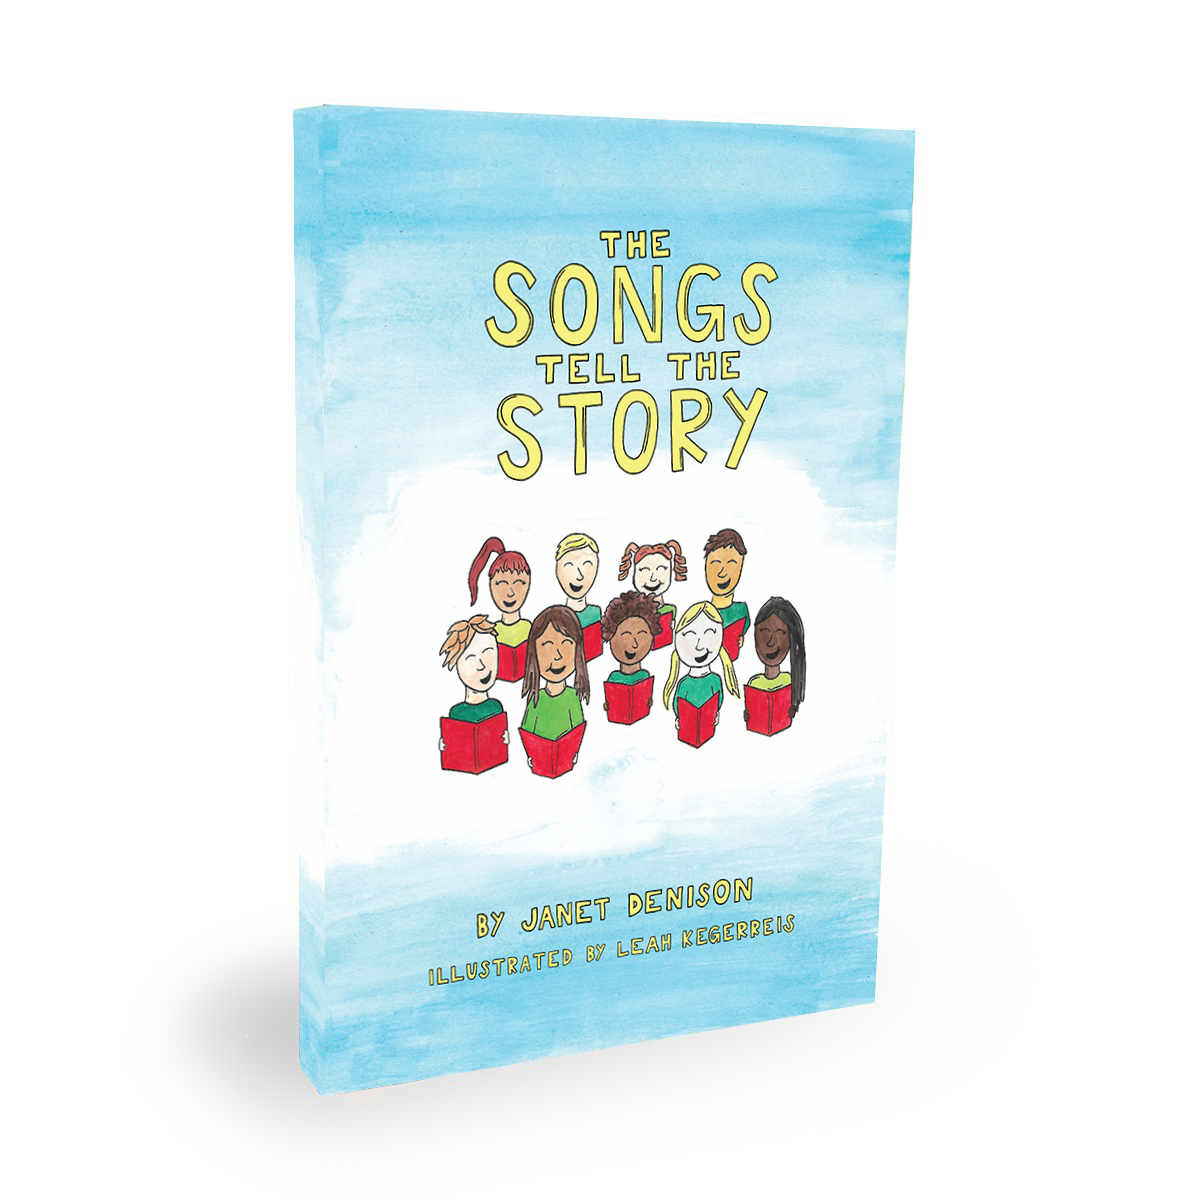 Get your copy of The Songs Tell the Story today!